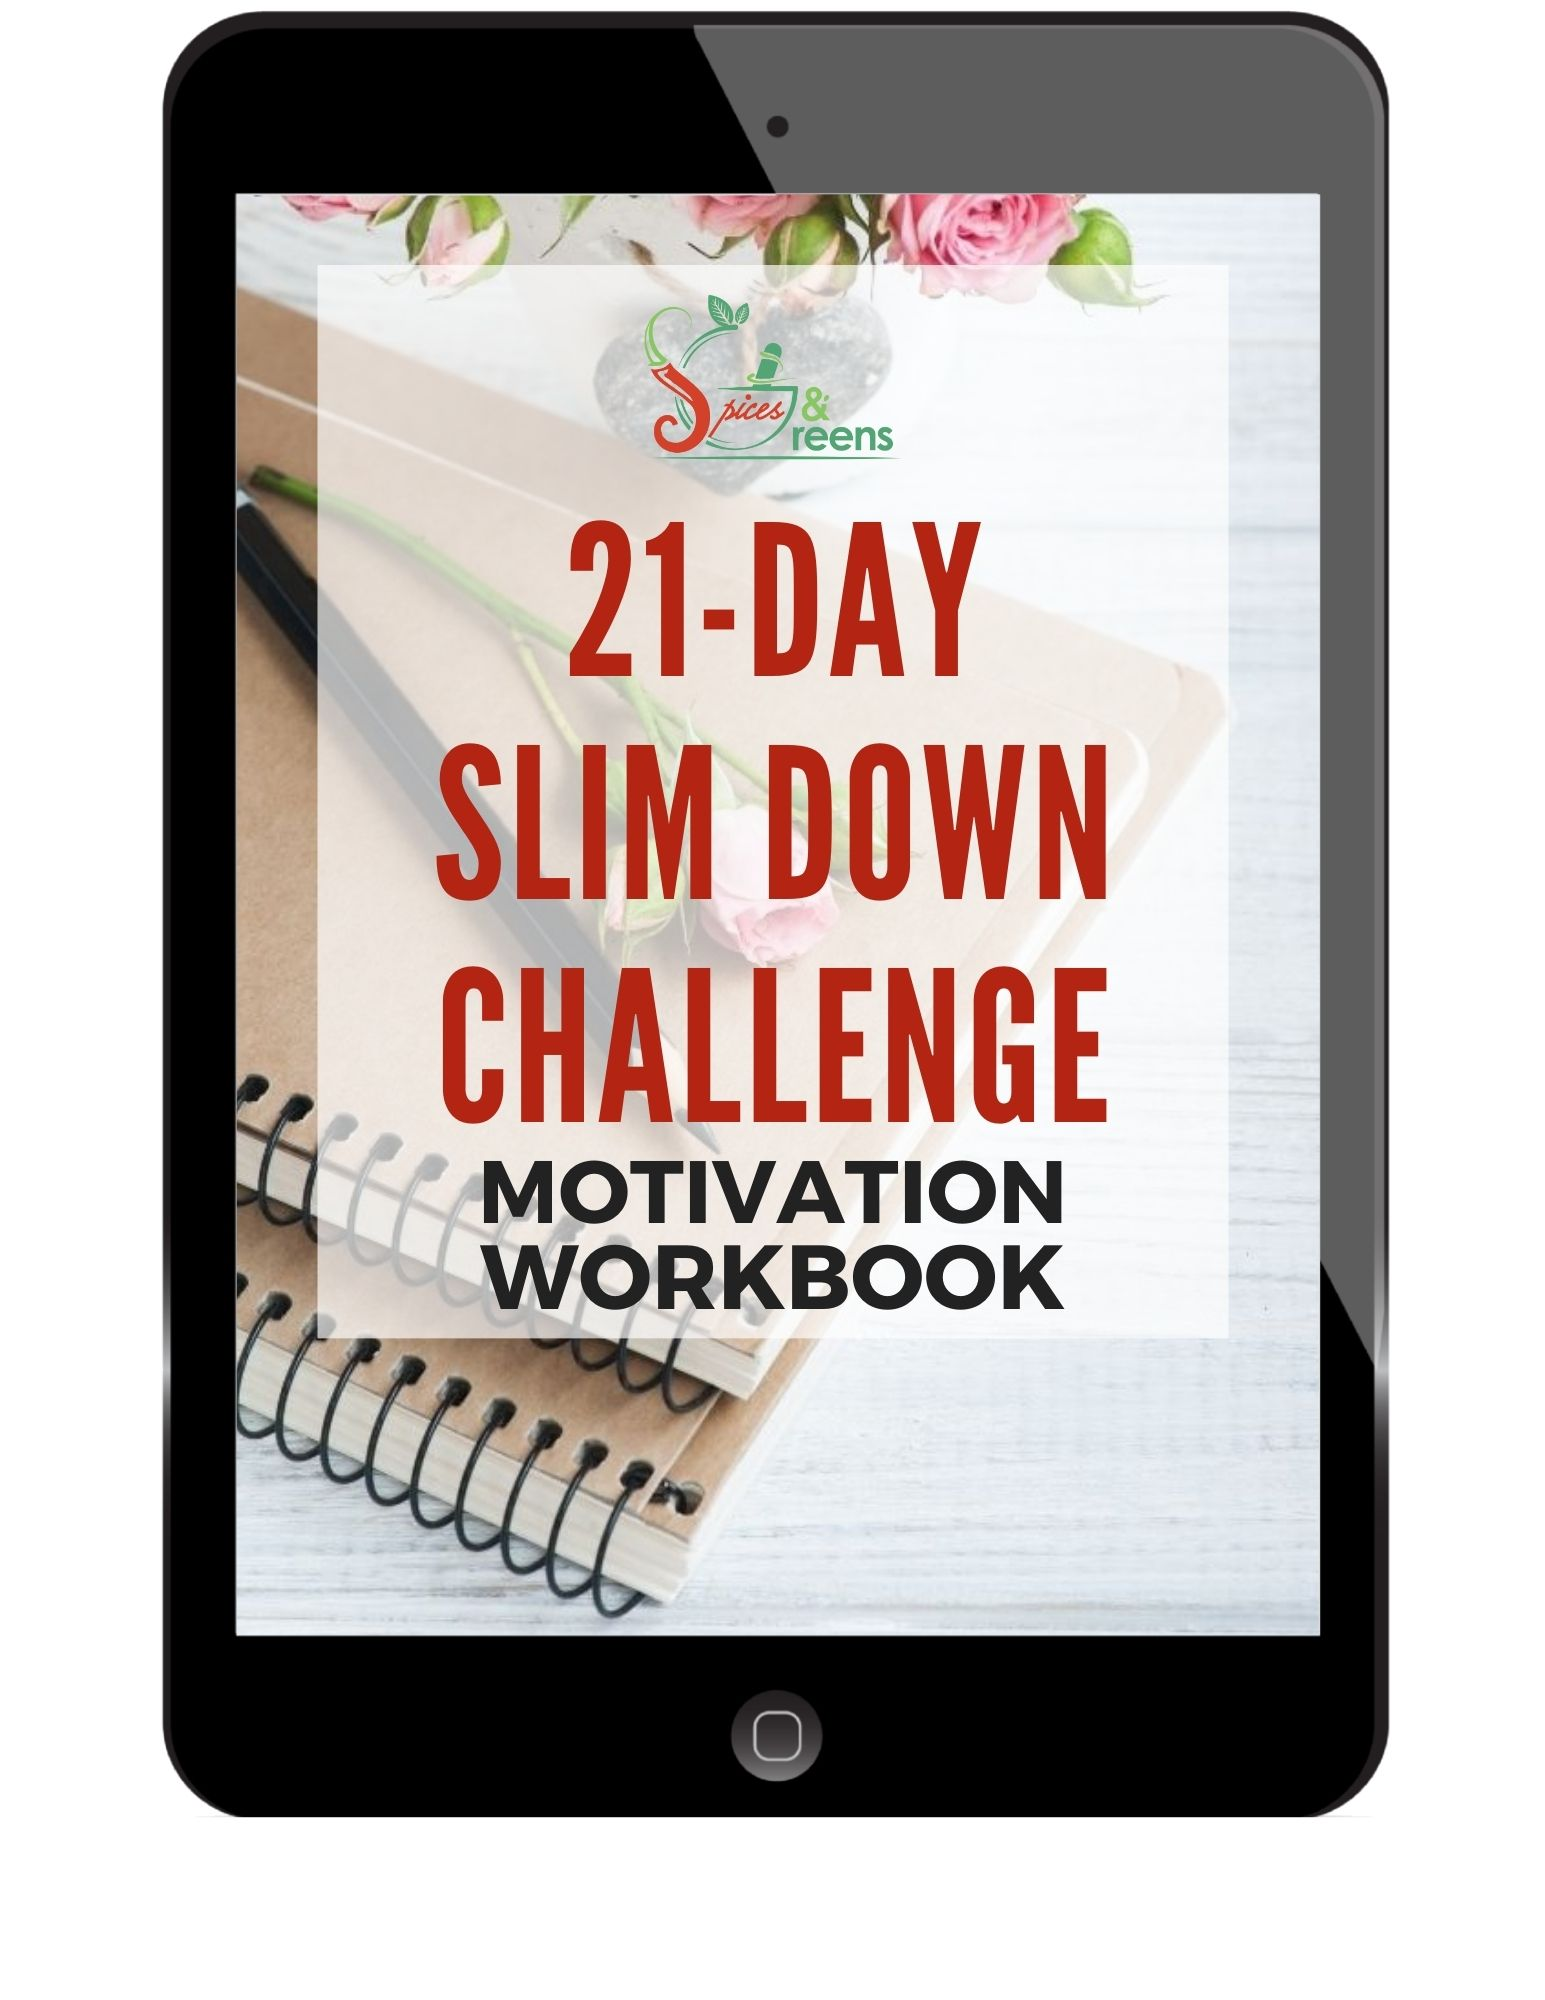 21-Day Slim Down Challenge Motivation Workbook